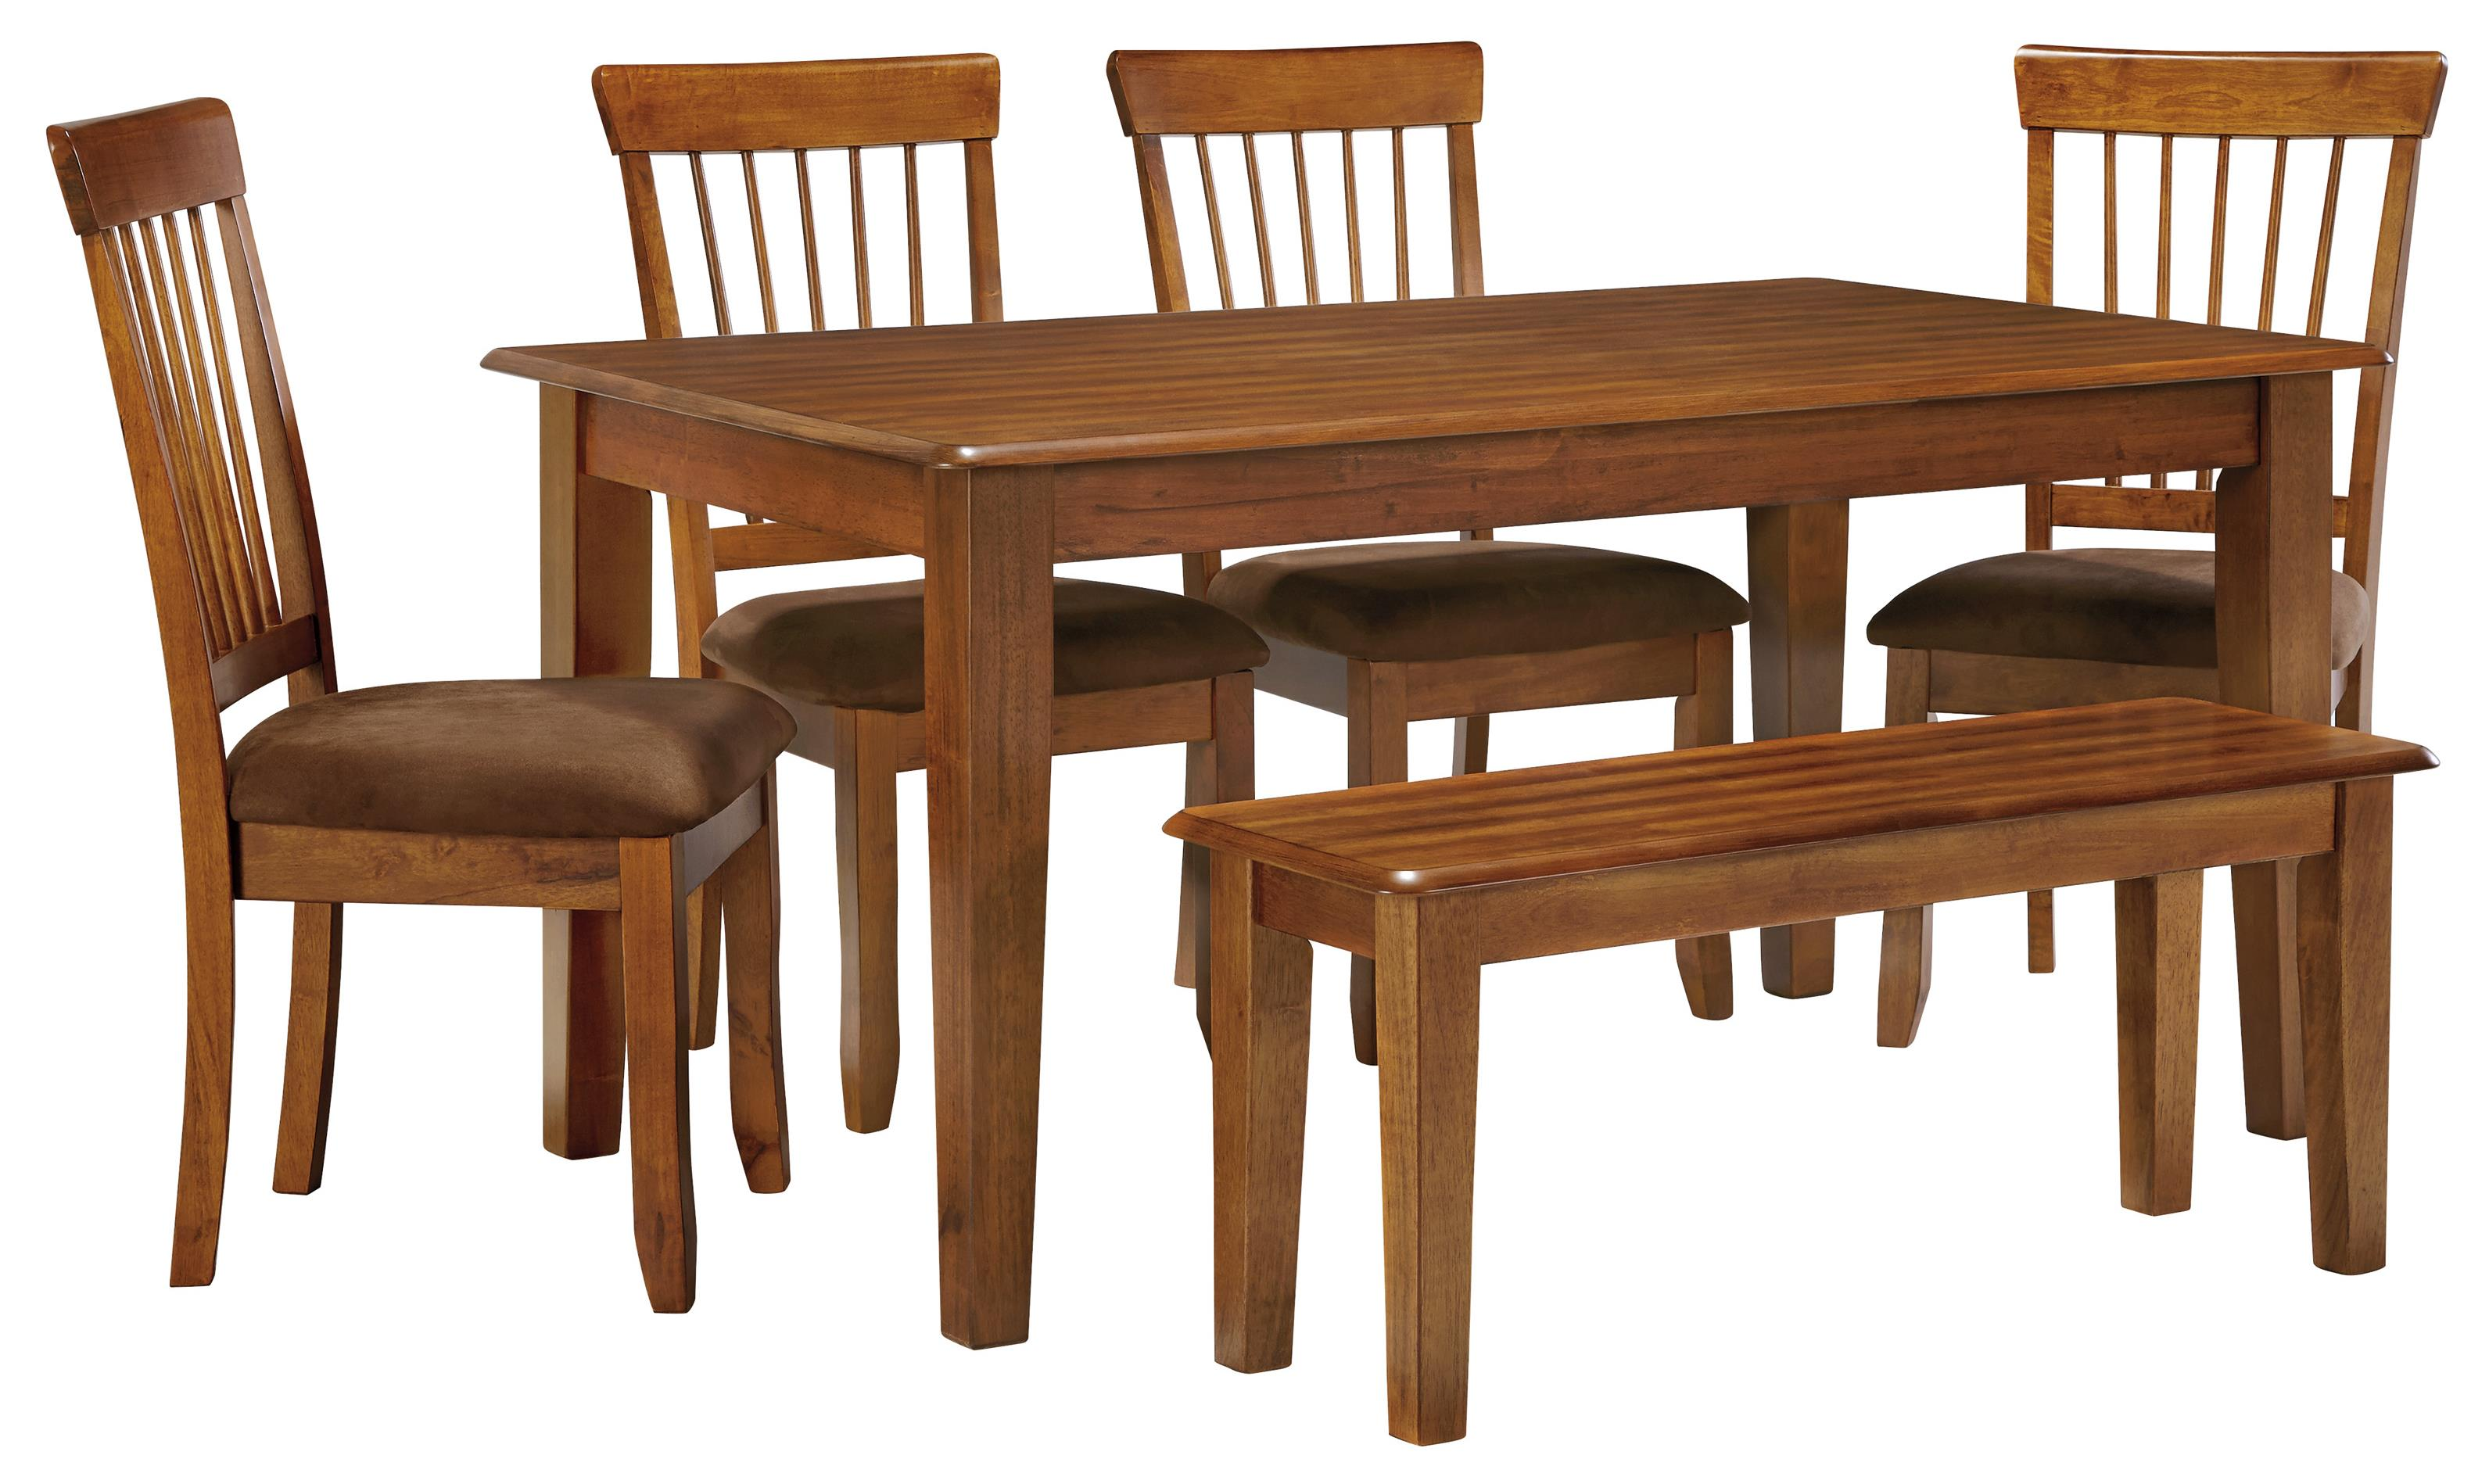 Ashley Furniture Berringer 36 X 60 Table With 4 Chairs Bench Dunk Bright Furniture Table Chair Set With Bench